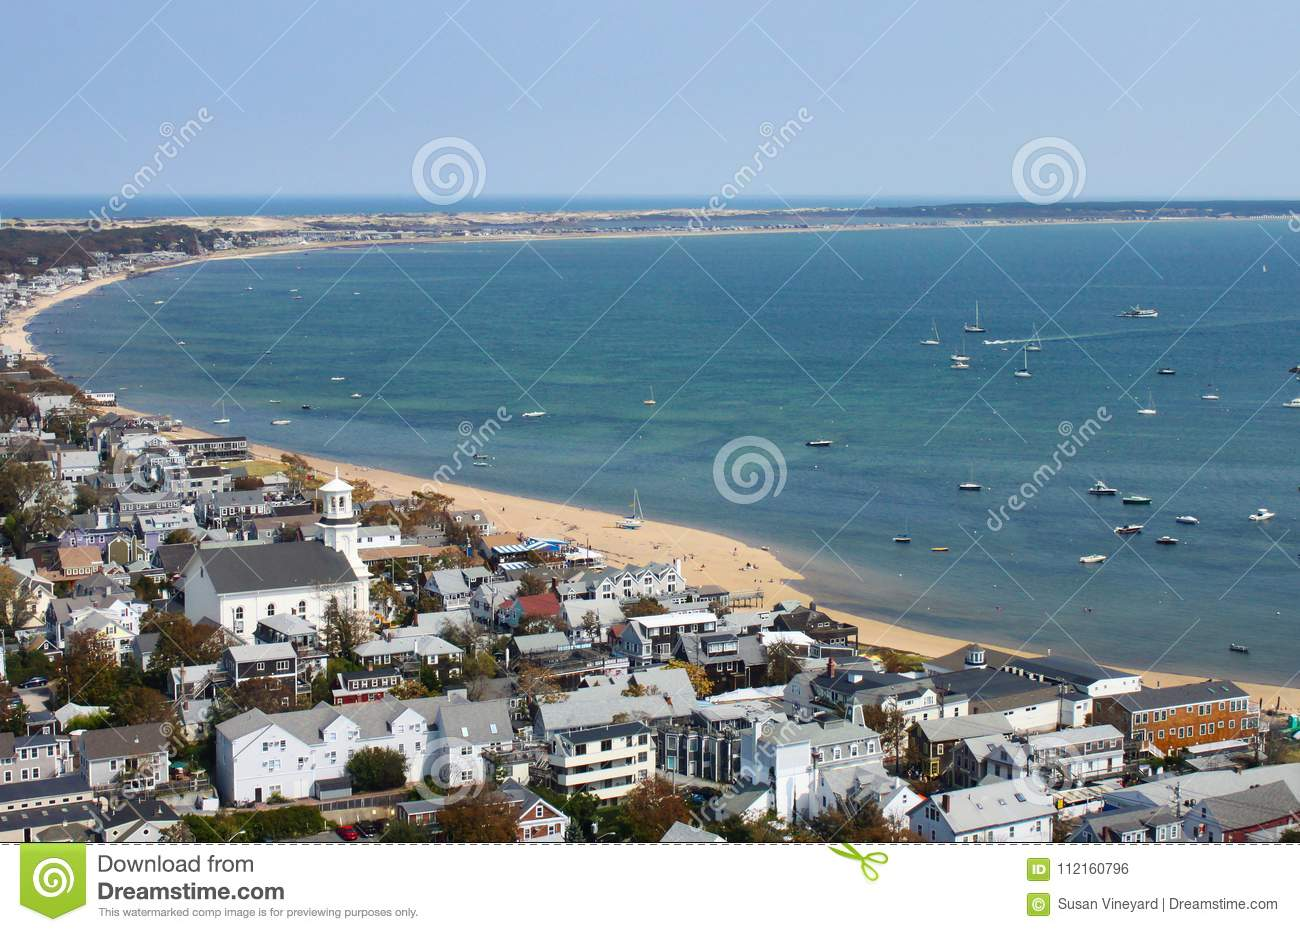 The View of Provincetown beach and the curve of the bay at the tip of Cape Cod from the top of the Pilgram Monument